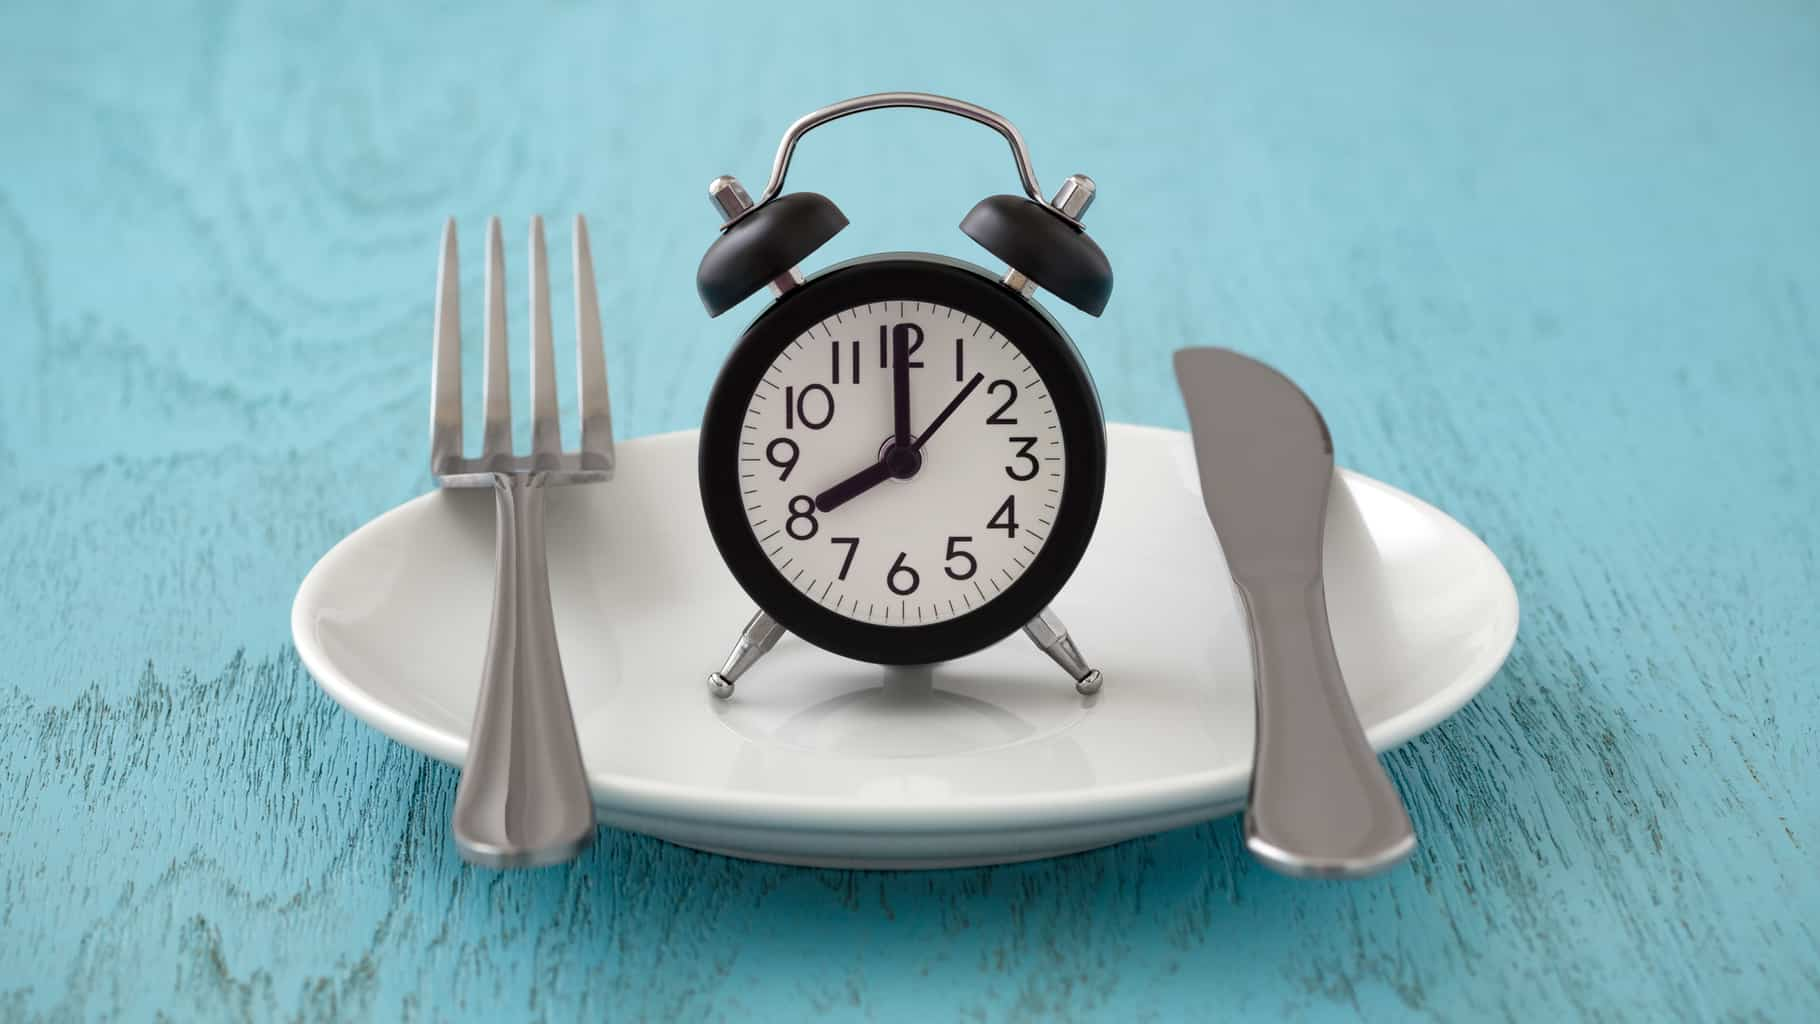 Fasting Offers No Special Weight Loss Benefits AND It May Cause Hidden Harm